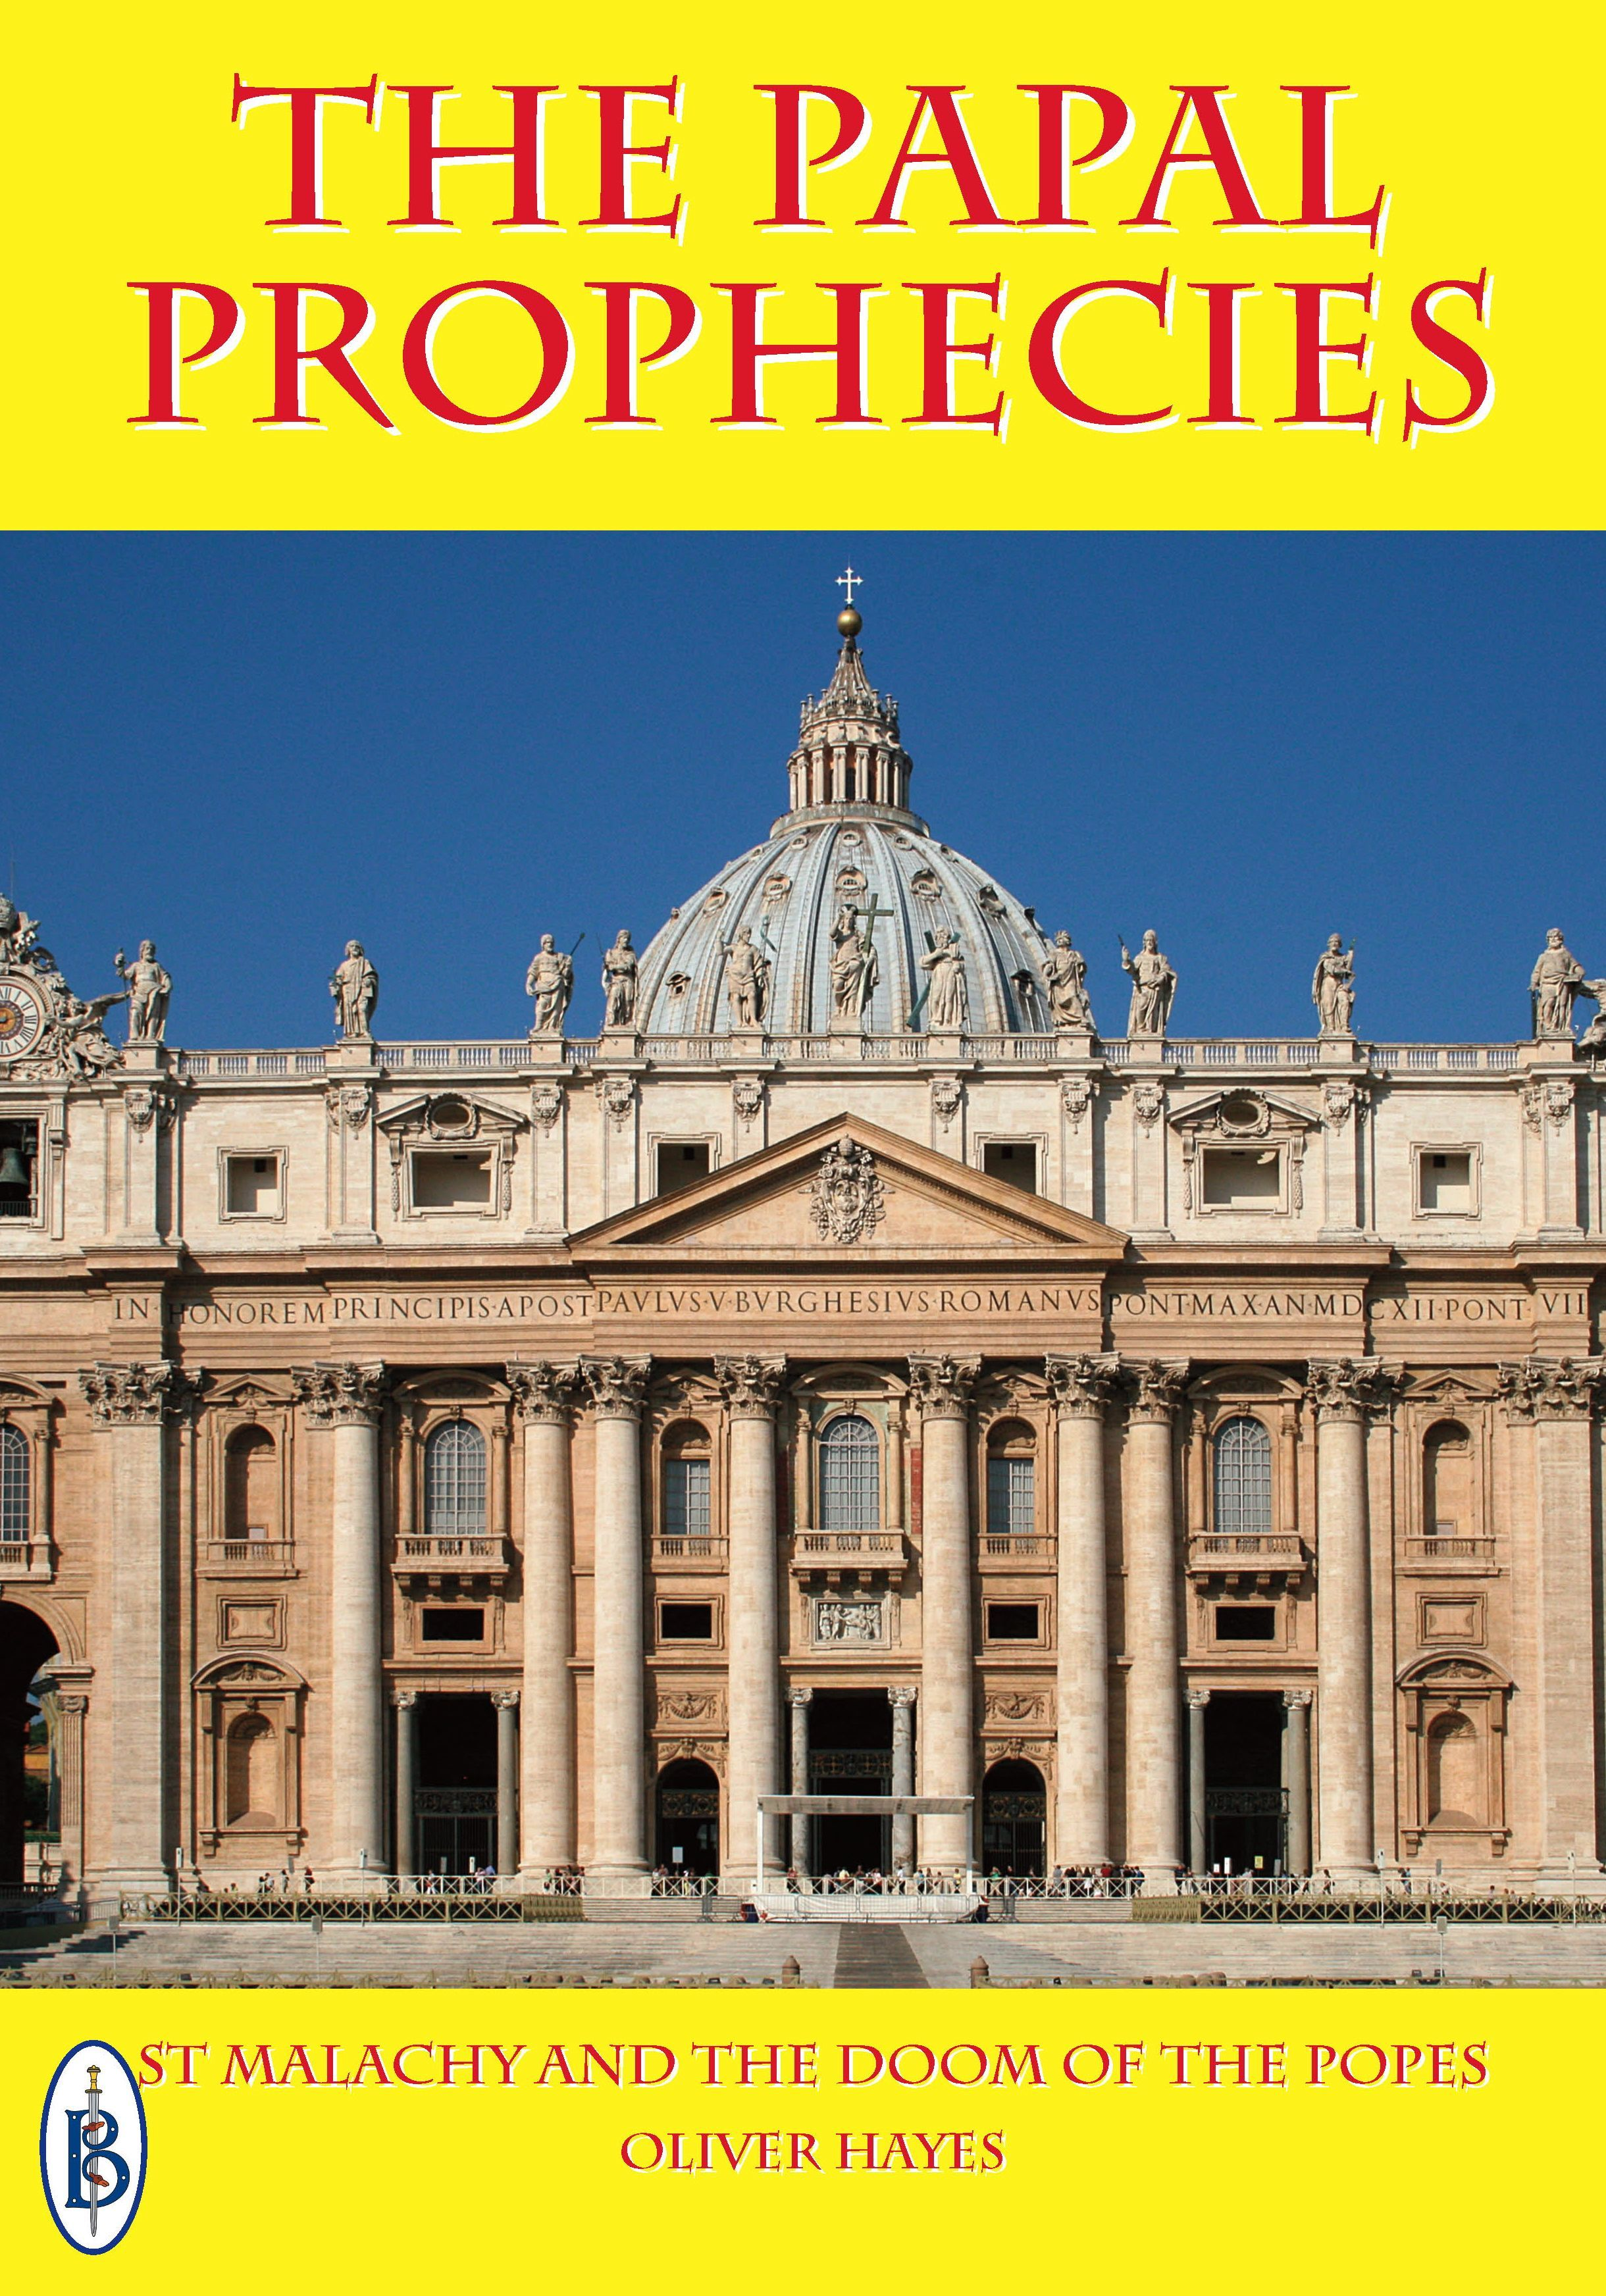 The Papal Prophecies: St Malachy and the Doom of the Popes